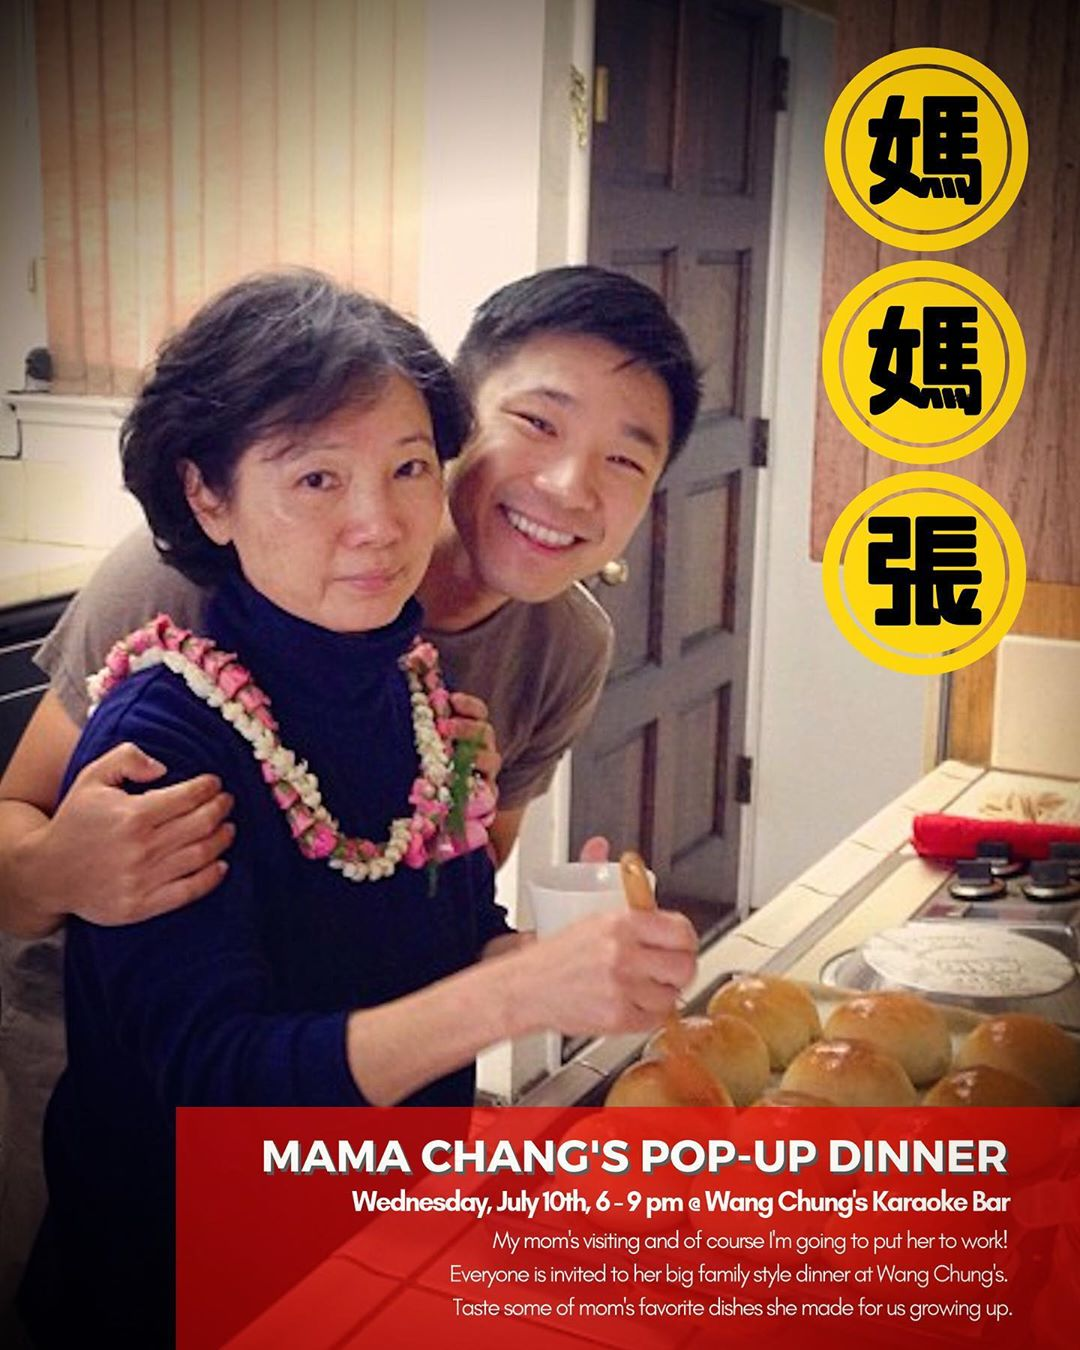 MAMA CHANG'S POP-UP DINNER! My mom is visiting for a few days and of course I'm going to put her to work! One of mom's dreams was to open her own restaurant. She always loved cooking for lots of people. So my brother and I wanted to make her dream come true (at least for a day) and so we flew mom out here to Hawaii and she is going to do a pop-up at Wang Chung's! Everyone is invited to her big family style dinner on Wednesday, July 10th, from 6 – 9 pm. Taste some of mom's favorite dishes she made for us growing up and for our big family gatherings. Dinner is complimentary — she just wants people to taste and enjoy her cooking. Any donations will be given to mom to donate back to the Phap Vuong Temple in her hometown. #wangchungs #ohana #youeatmeow #mamachang #popup #lovemymom